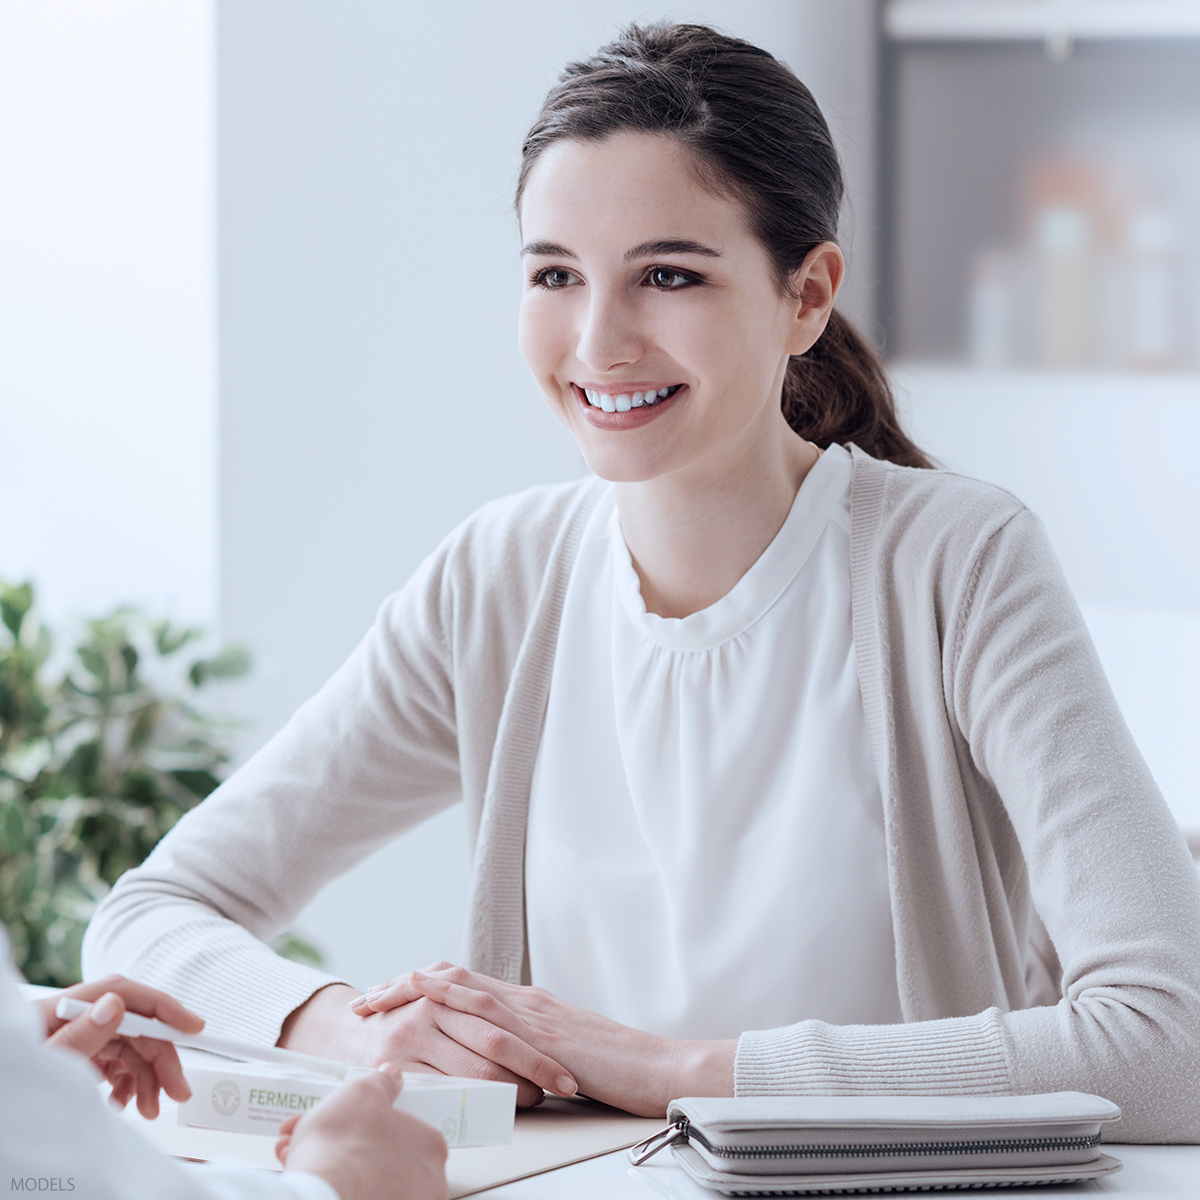 Woman at a consultation